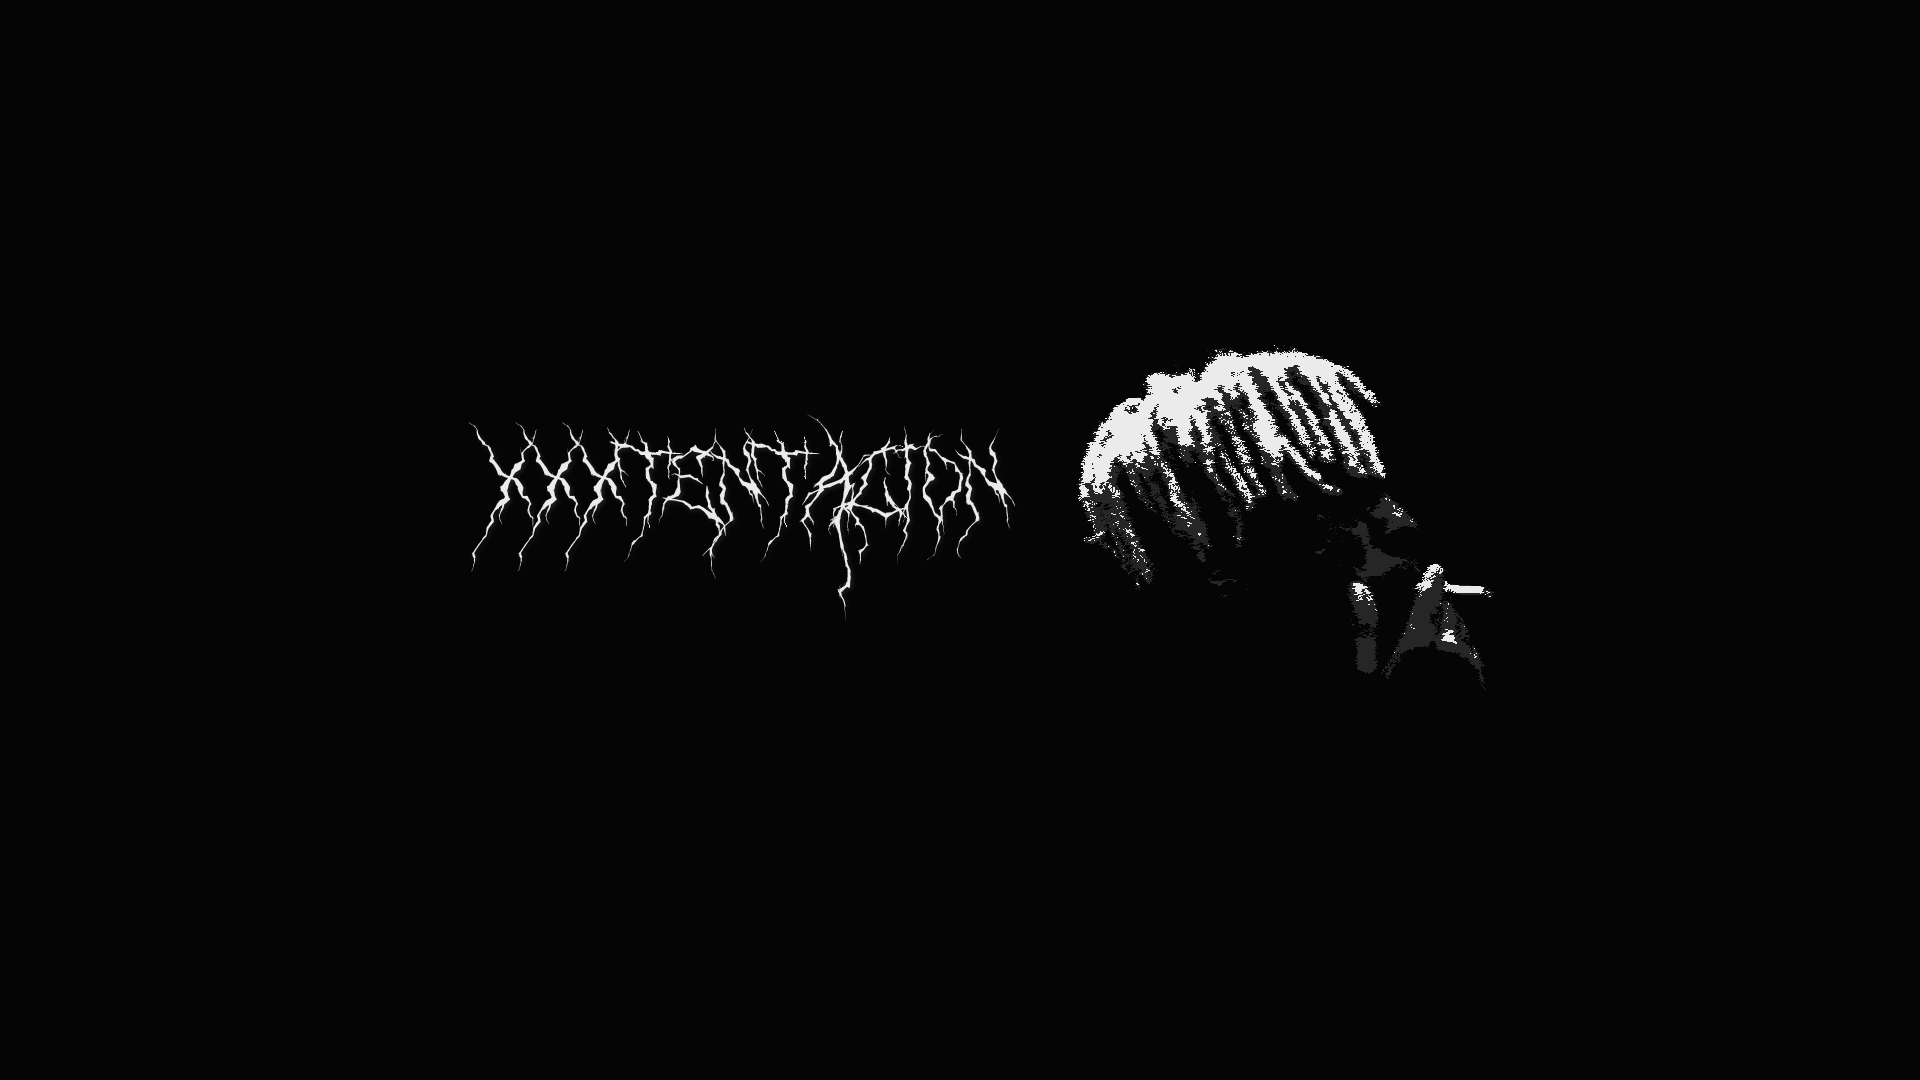 1920x1080 17 XXXTentacion Wallpapers